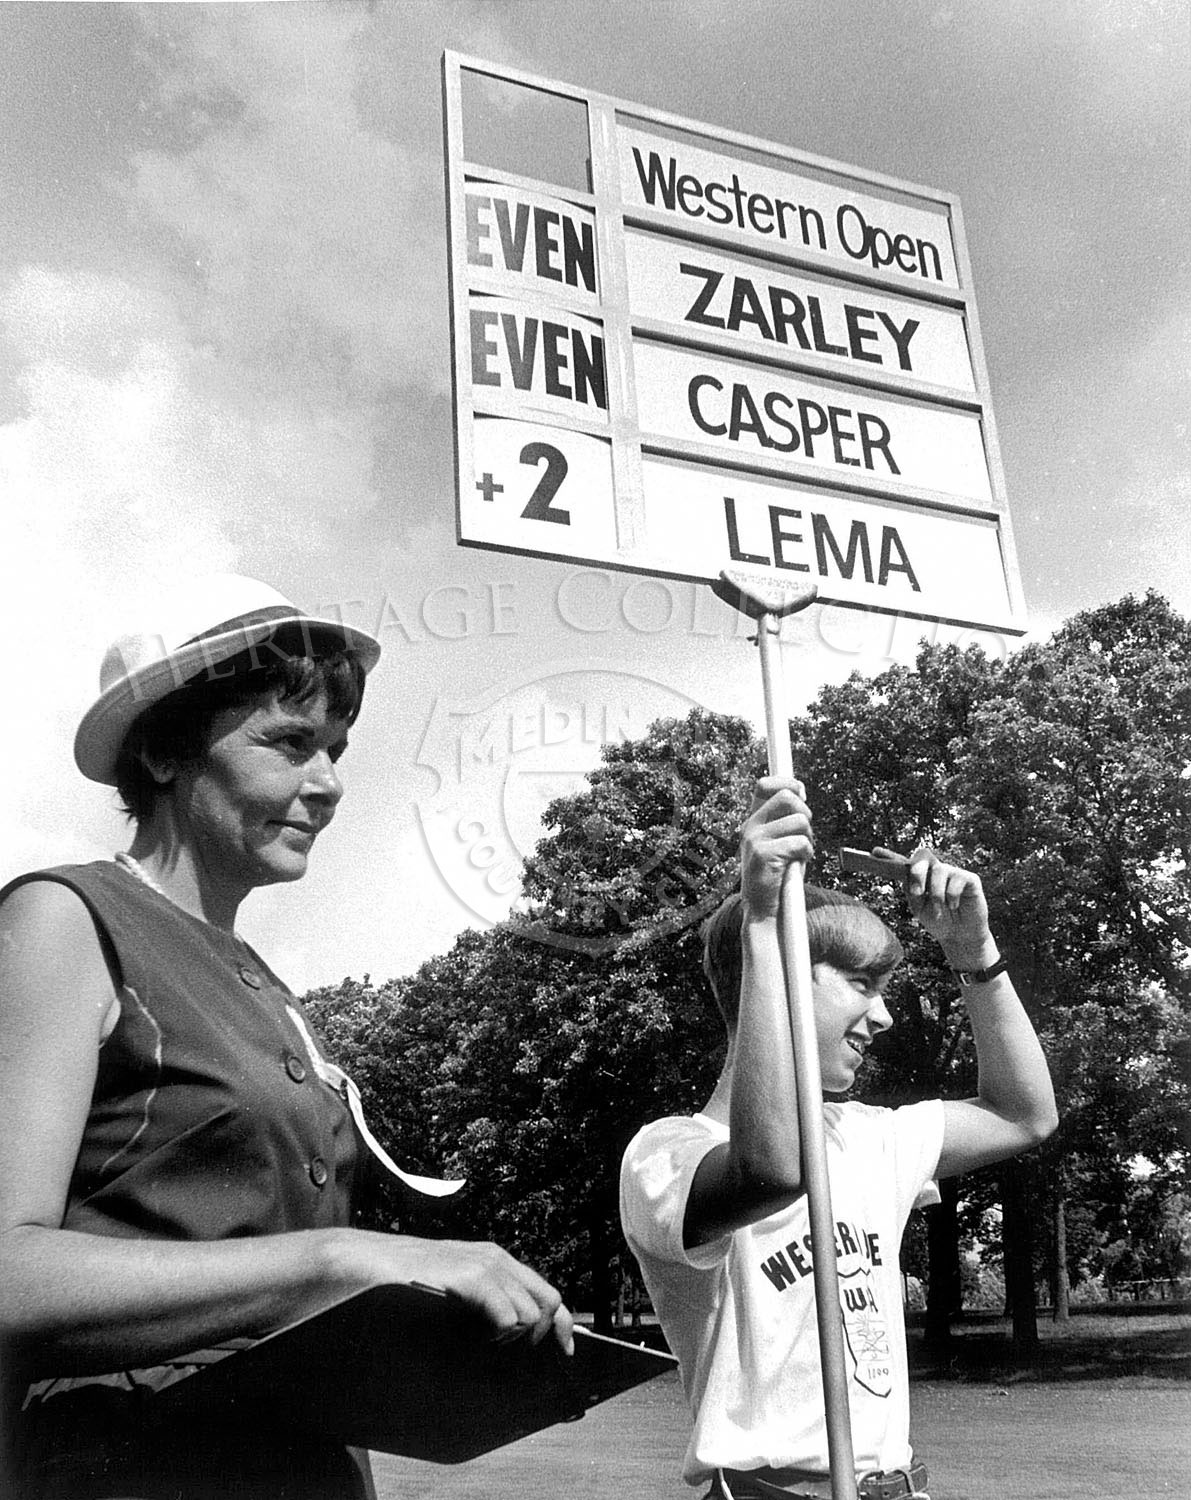 The sign held by the young man during the 63rd Western Open was for the golf trio of Kermit Zarley, Billy Casper and Tony Lema. Casper went on the win the tournament with a total score of 283, which was one under par.